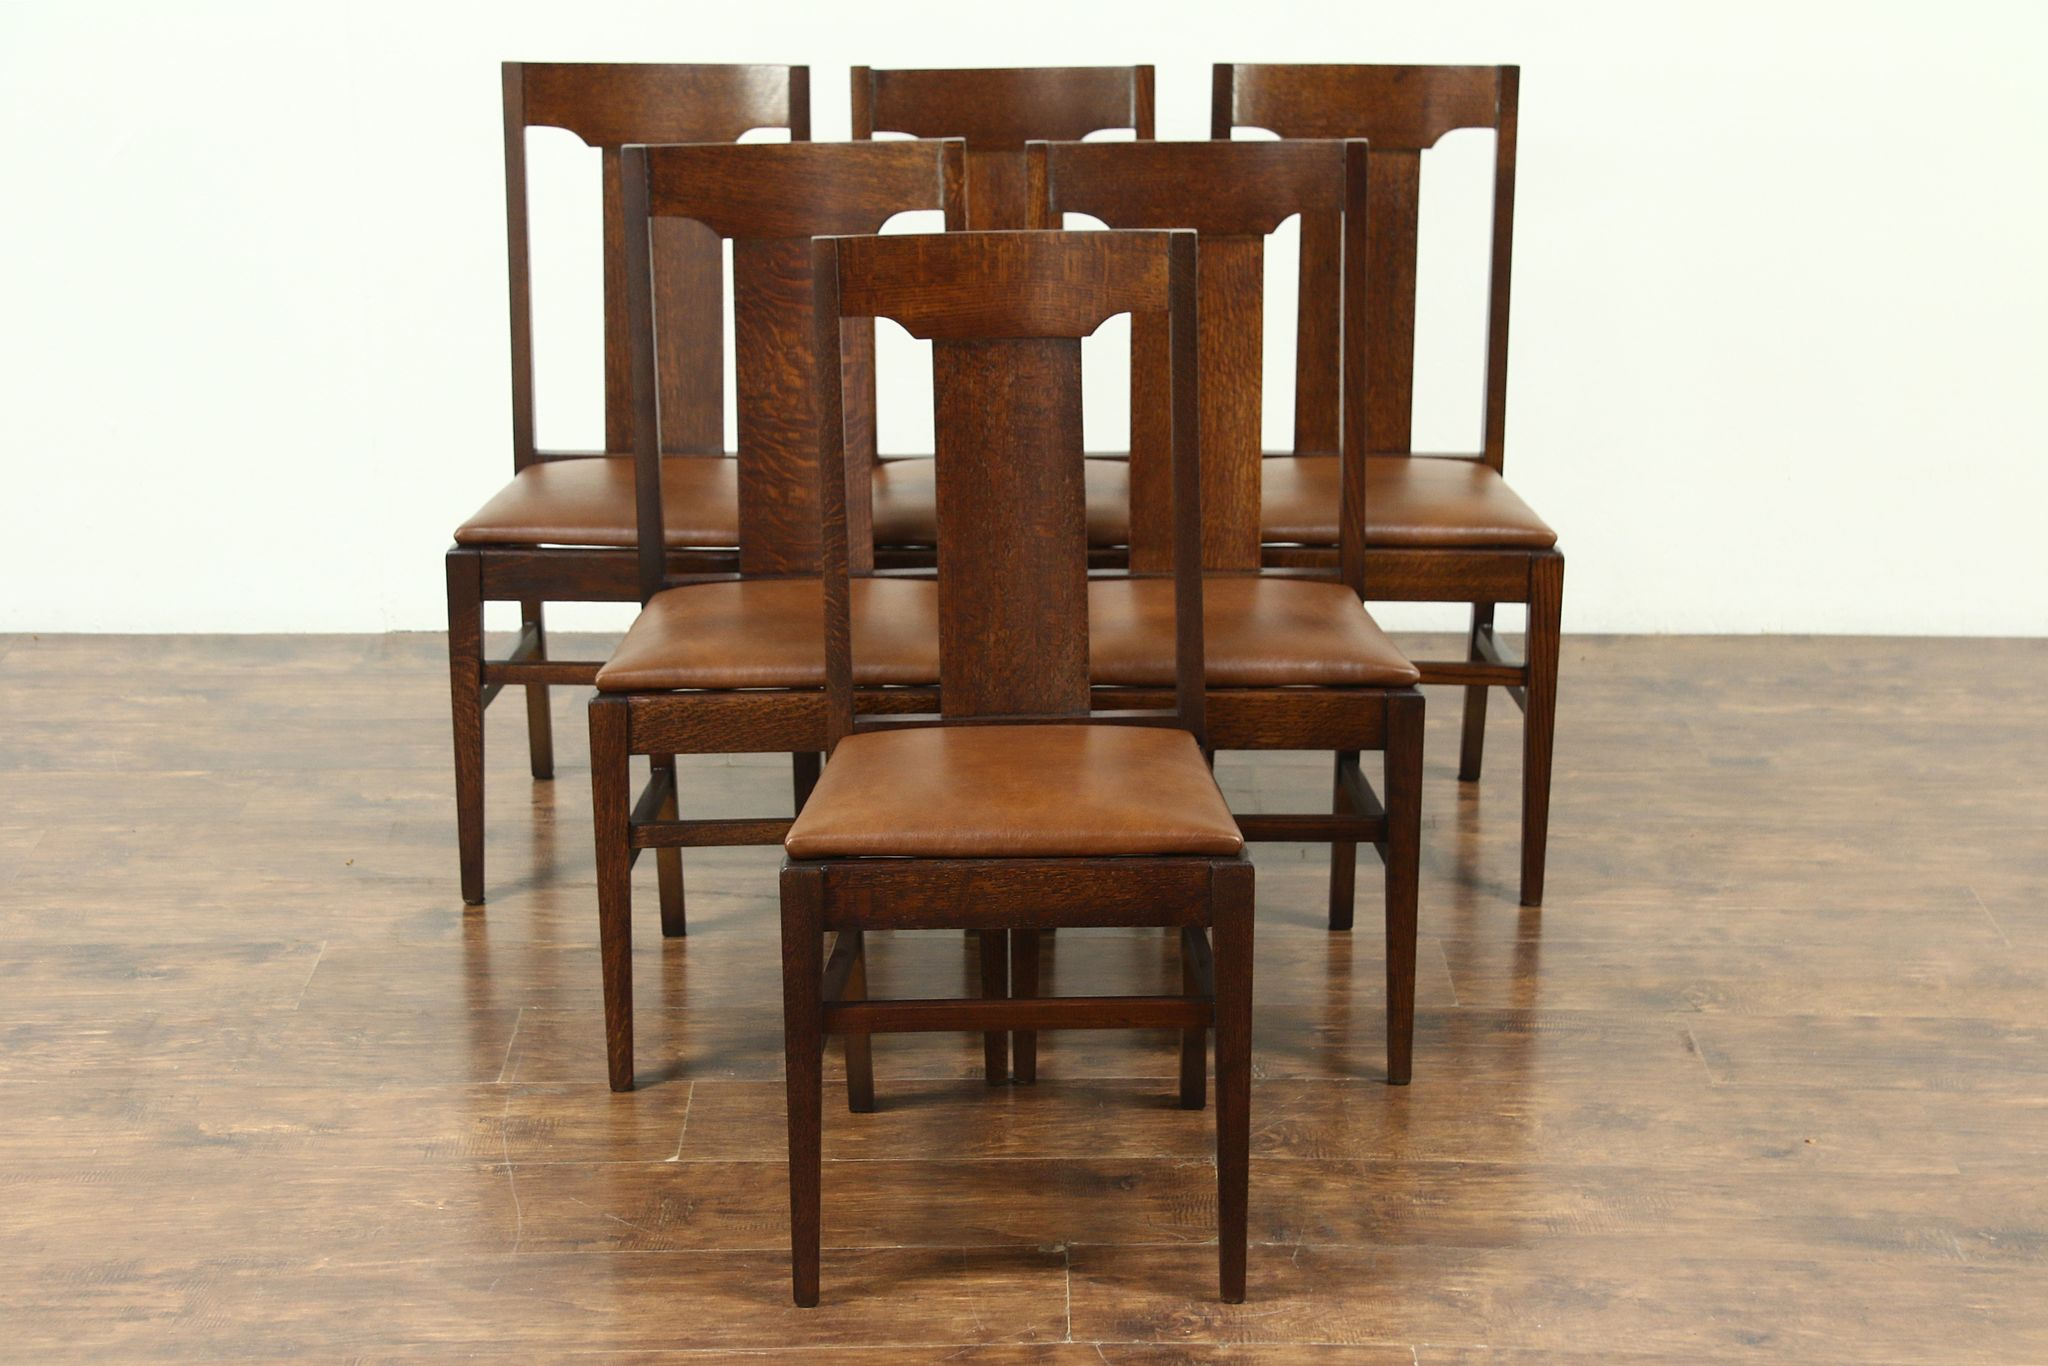 Dining Chair Set Of 6 Set 6 Arts Crafts Mission Oak Antique Craftsman Dining Chairs Leather 28678